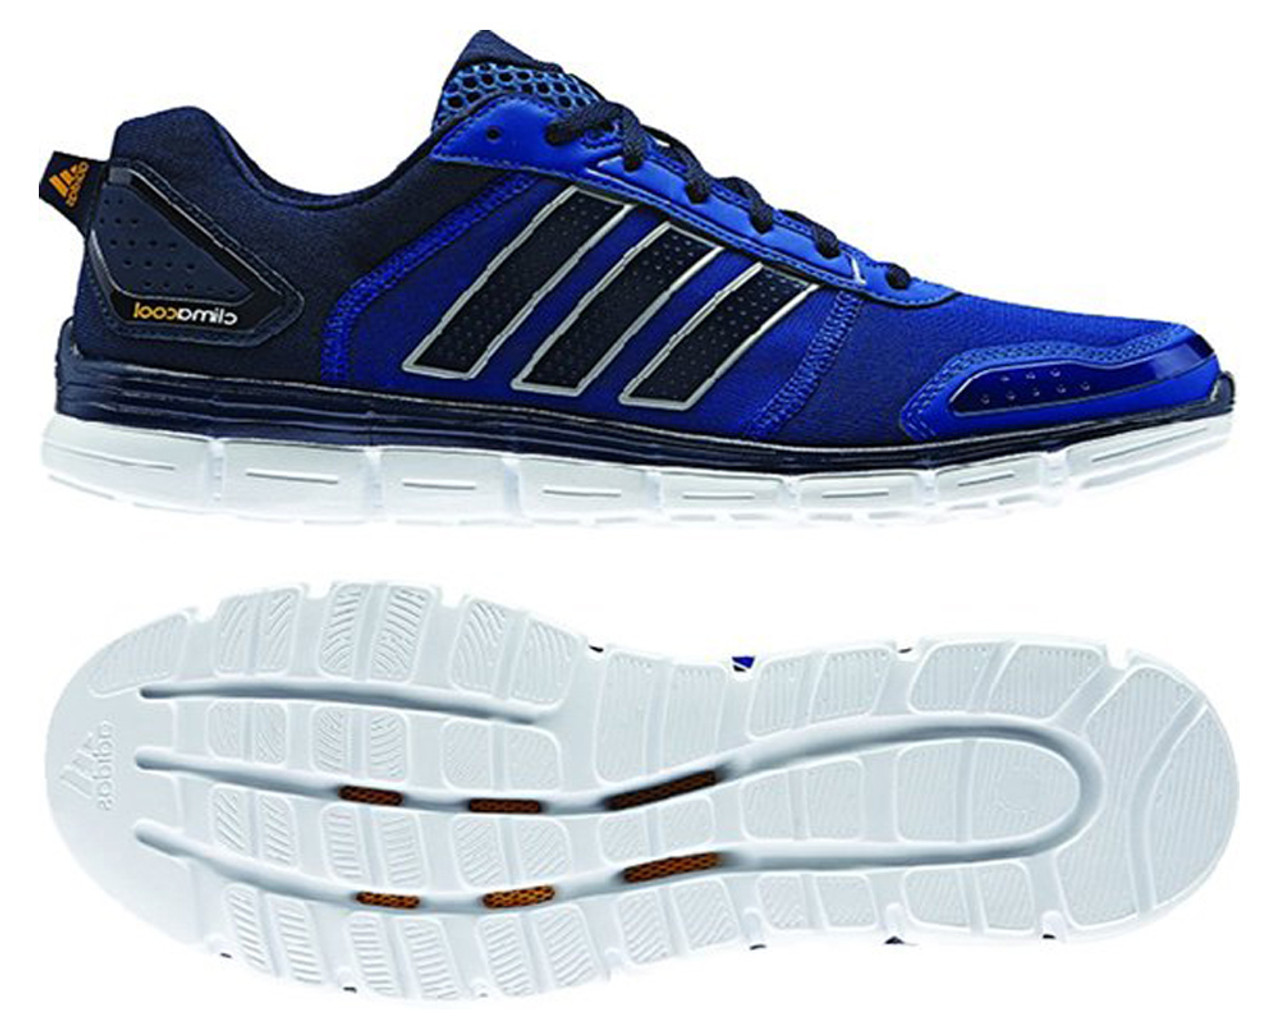 Adidas Men's Climacool Aerate 3 Running Shoes Navy/Solar Gold